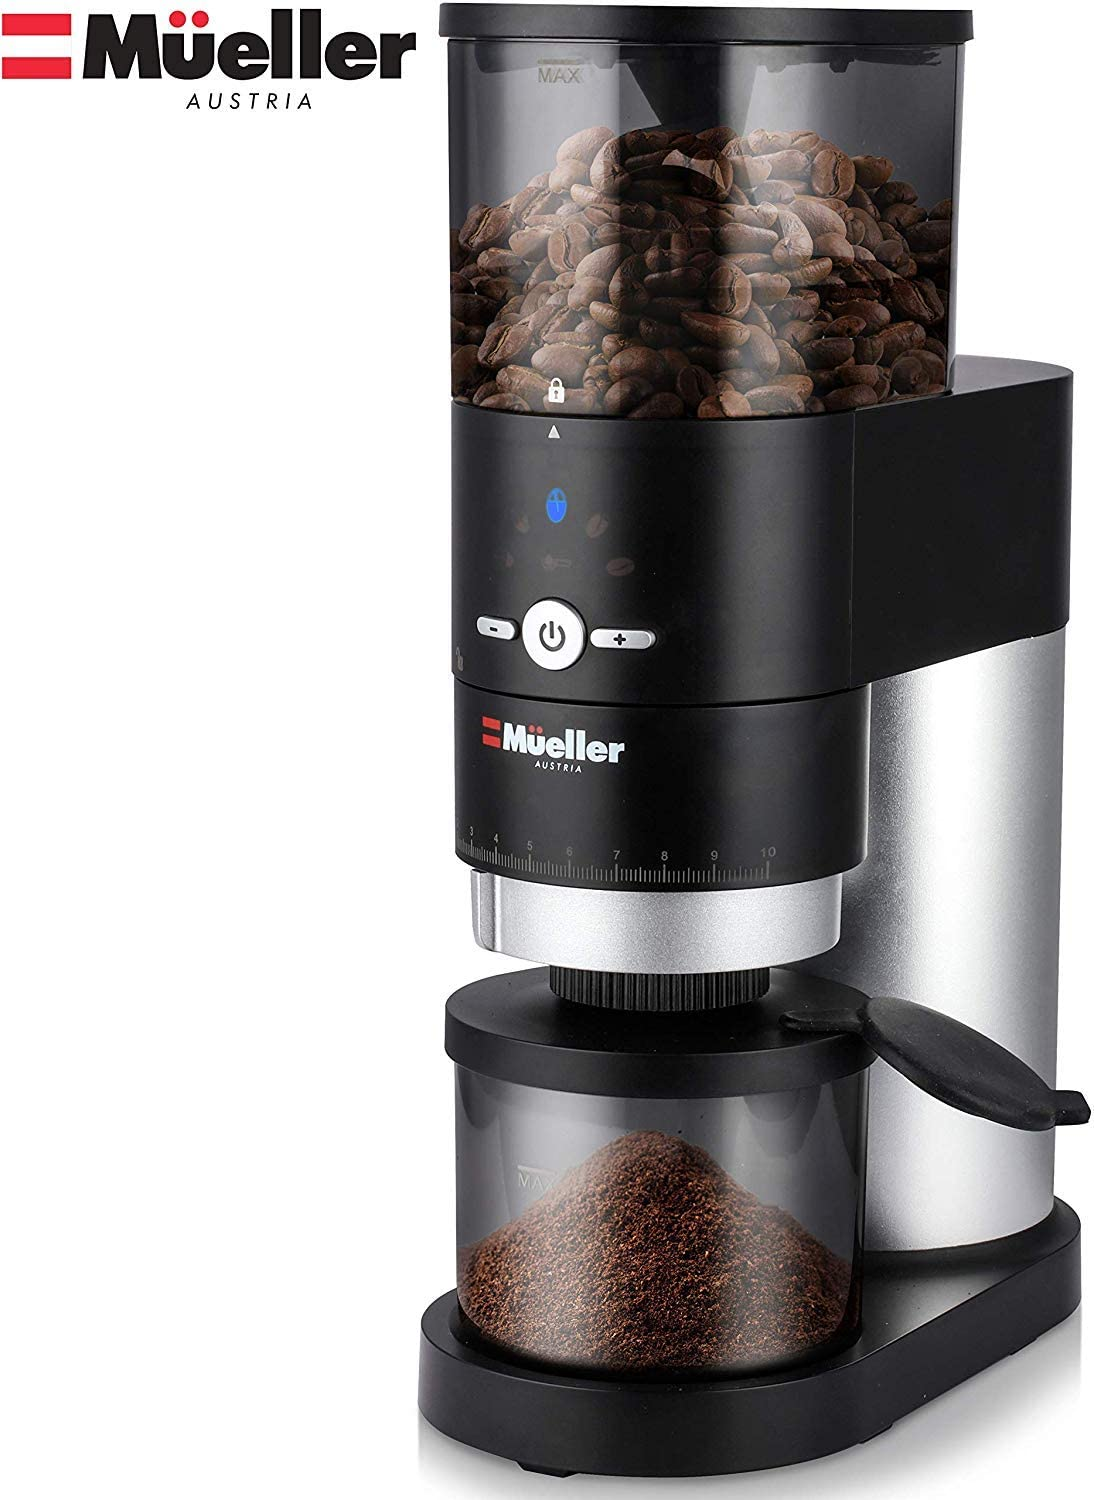 Mueller Ultra-Grind Conical Burr Grinder Professional Series, Innovative Detachable PowderBlock Grinding Chamber for Easy Cleaning and 40mm Hardened Gears for Long Life